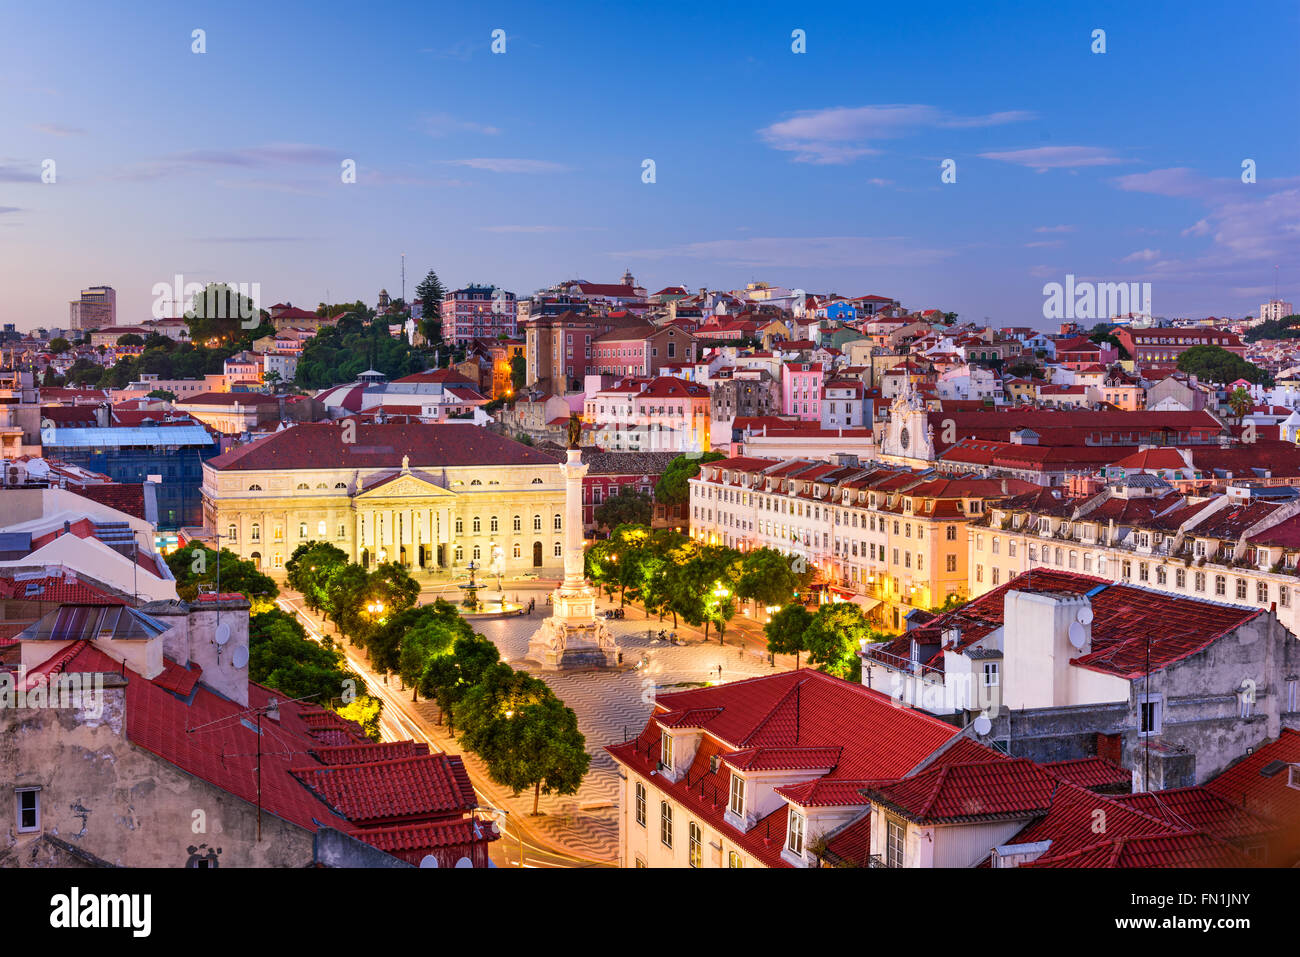 Lisbon, Portugal skyline over Rossio Square. - Stock Image